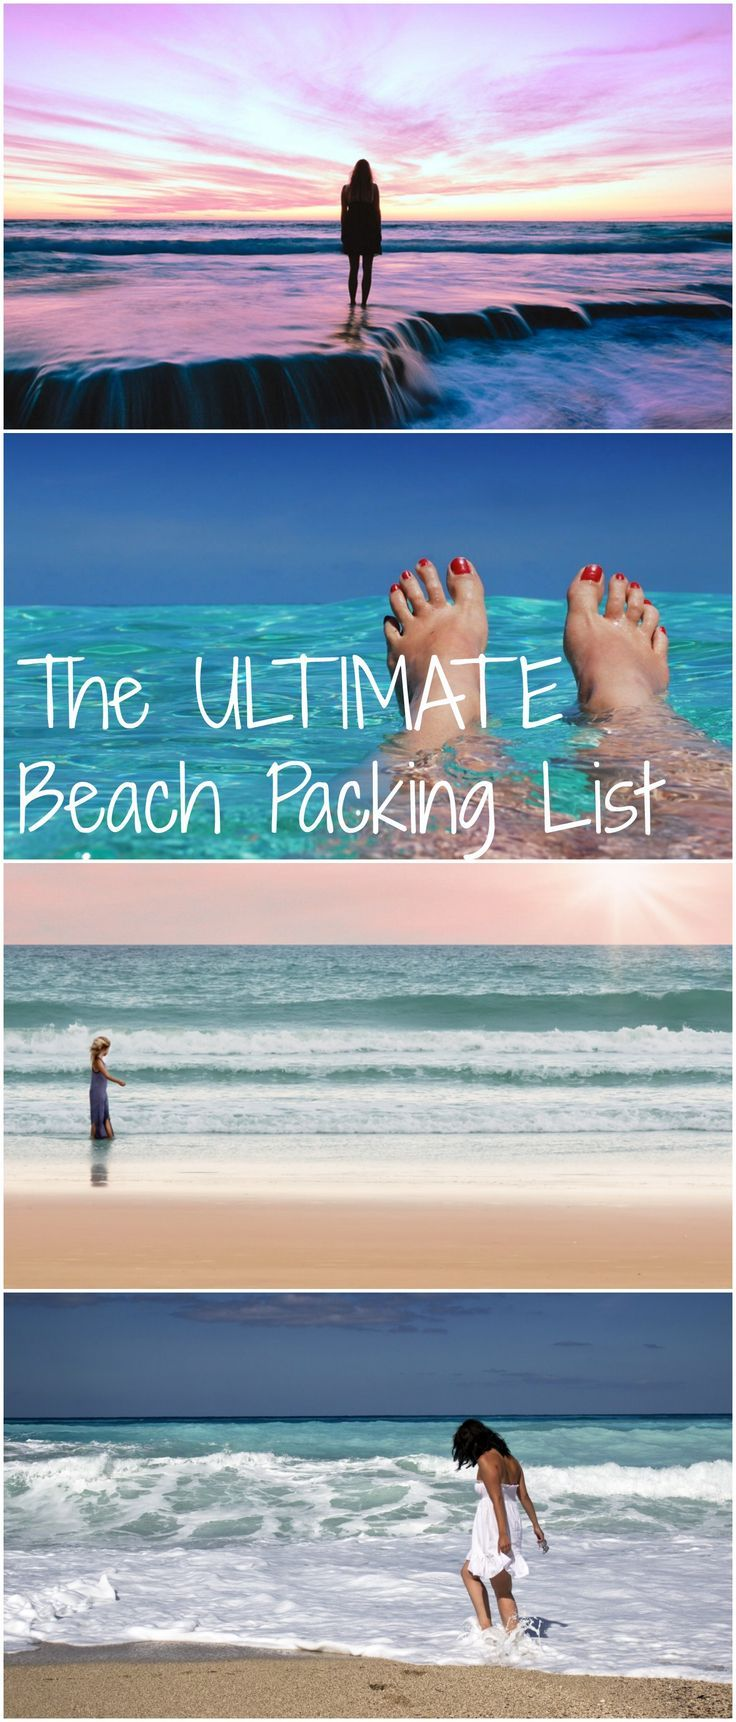 All you need to pack for your next beach vacation!